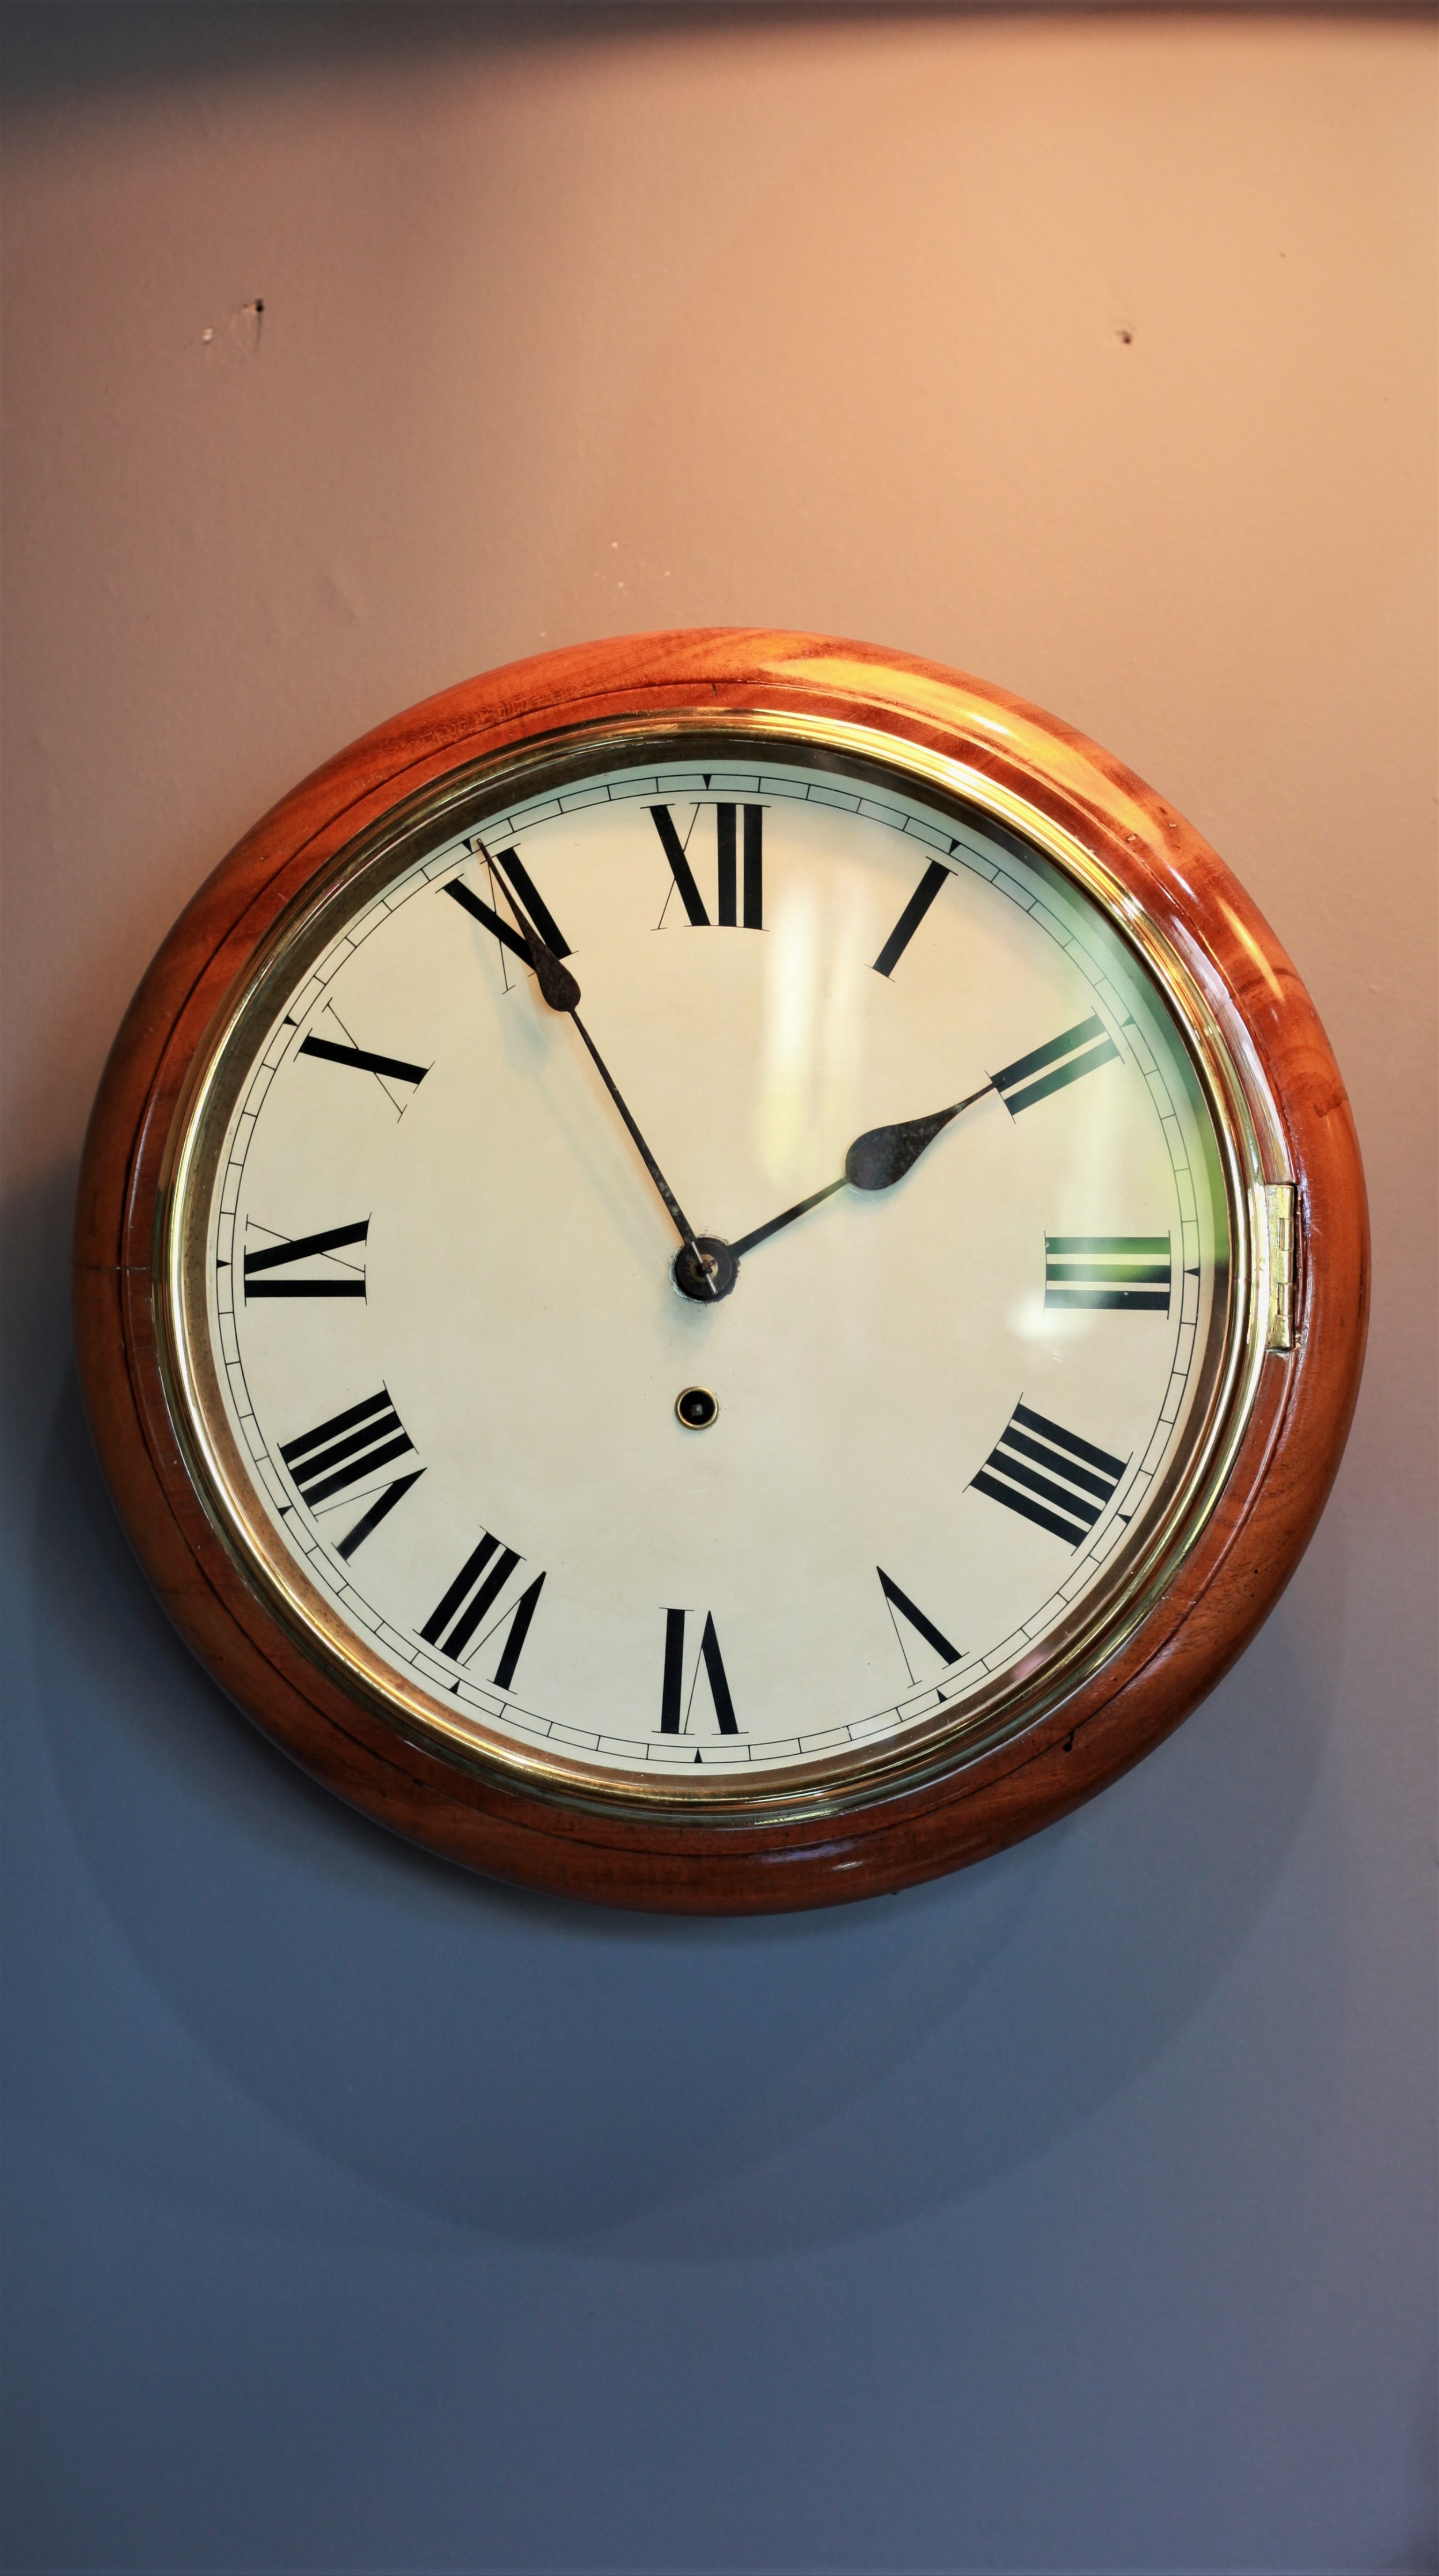 a pristine 20th century mahogany dial clock or school clock by smiths